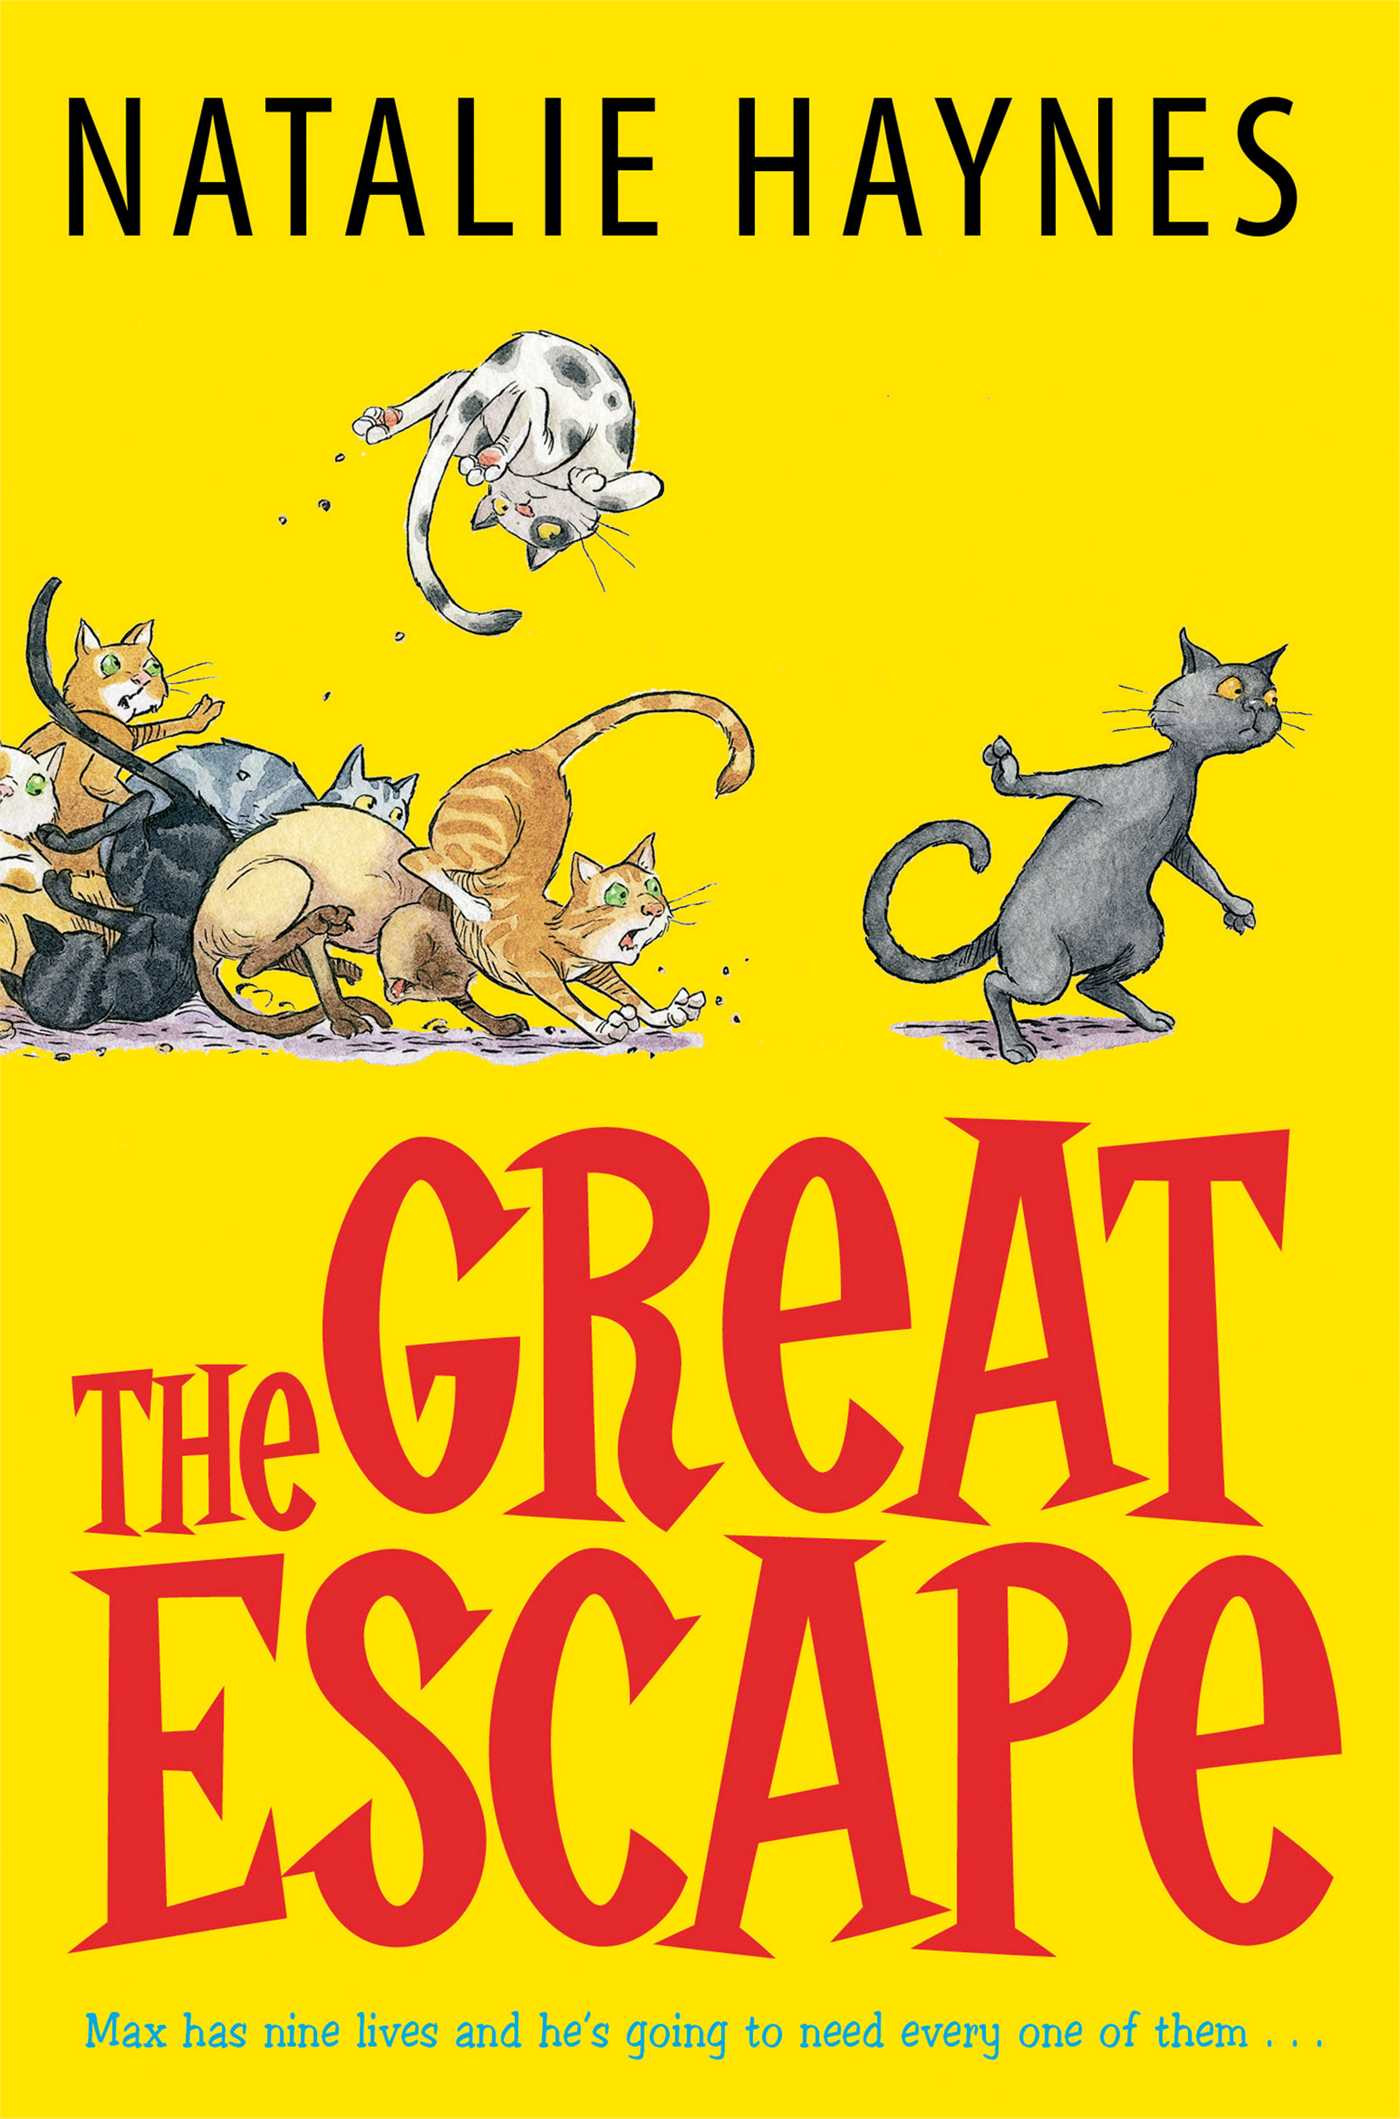 Great-escape-9781471122965_hr